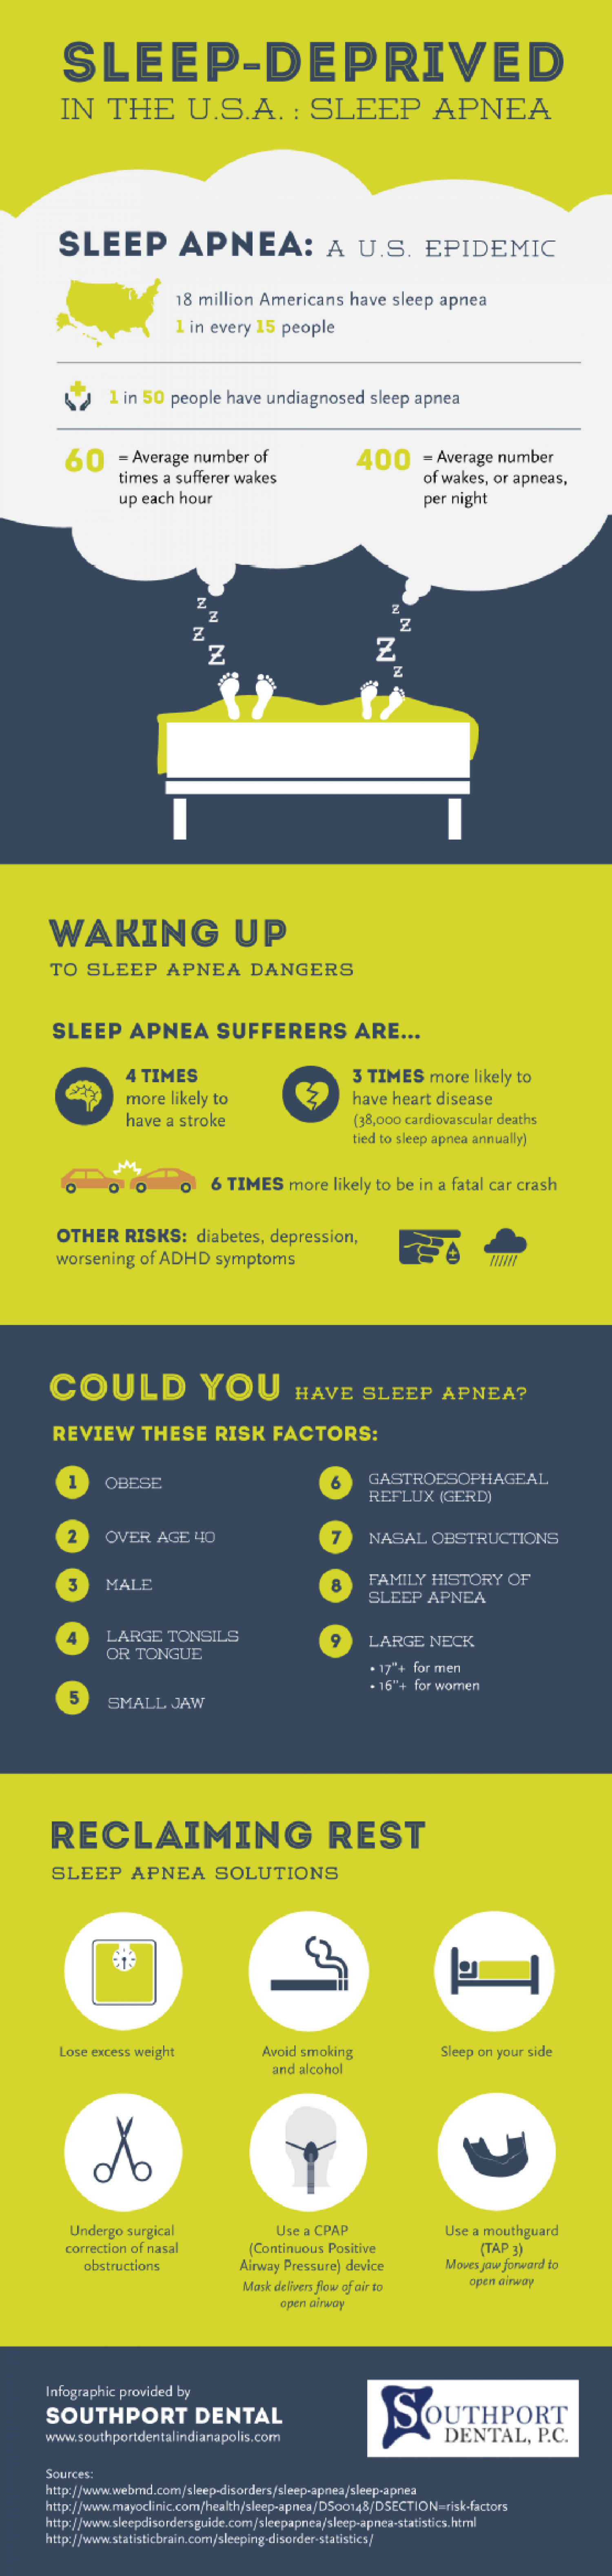 Sleep-Deprived in the U.S.A.: Sleep Apnea Infographic